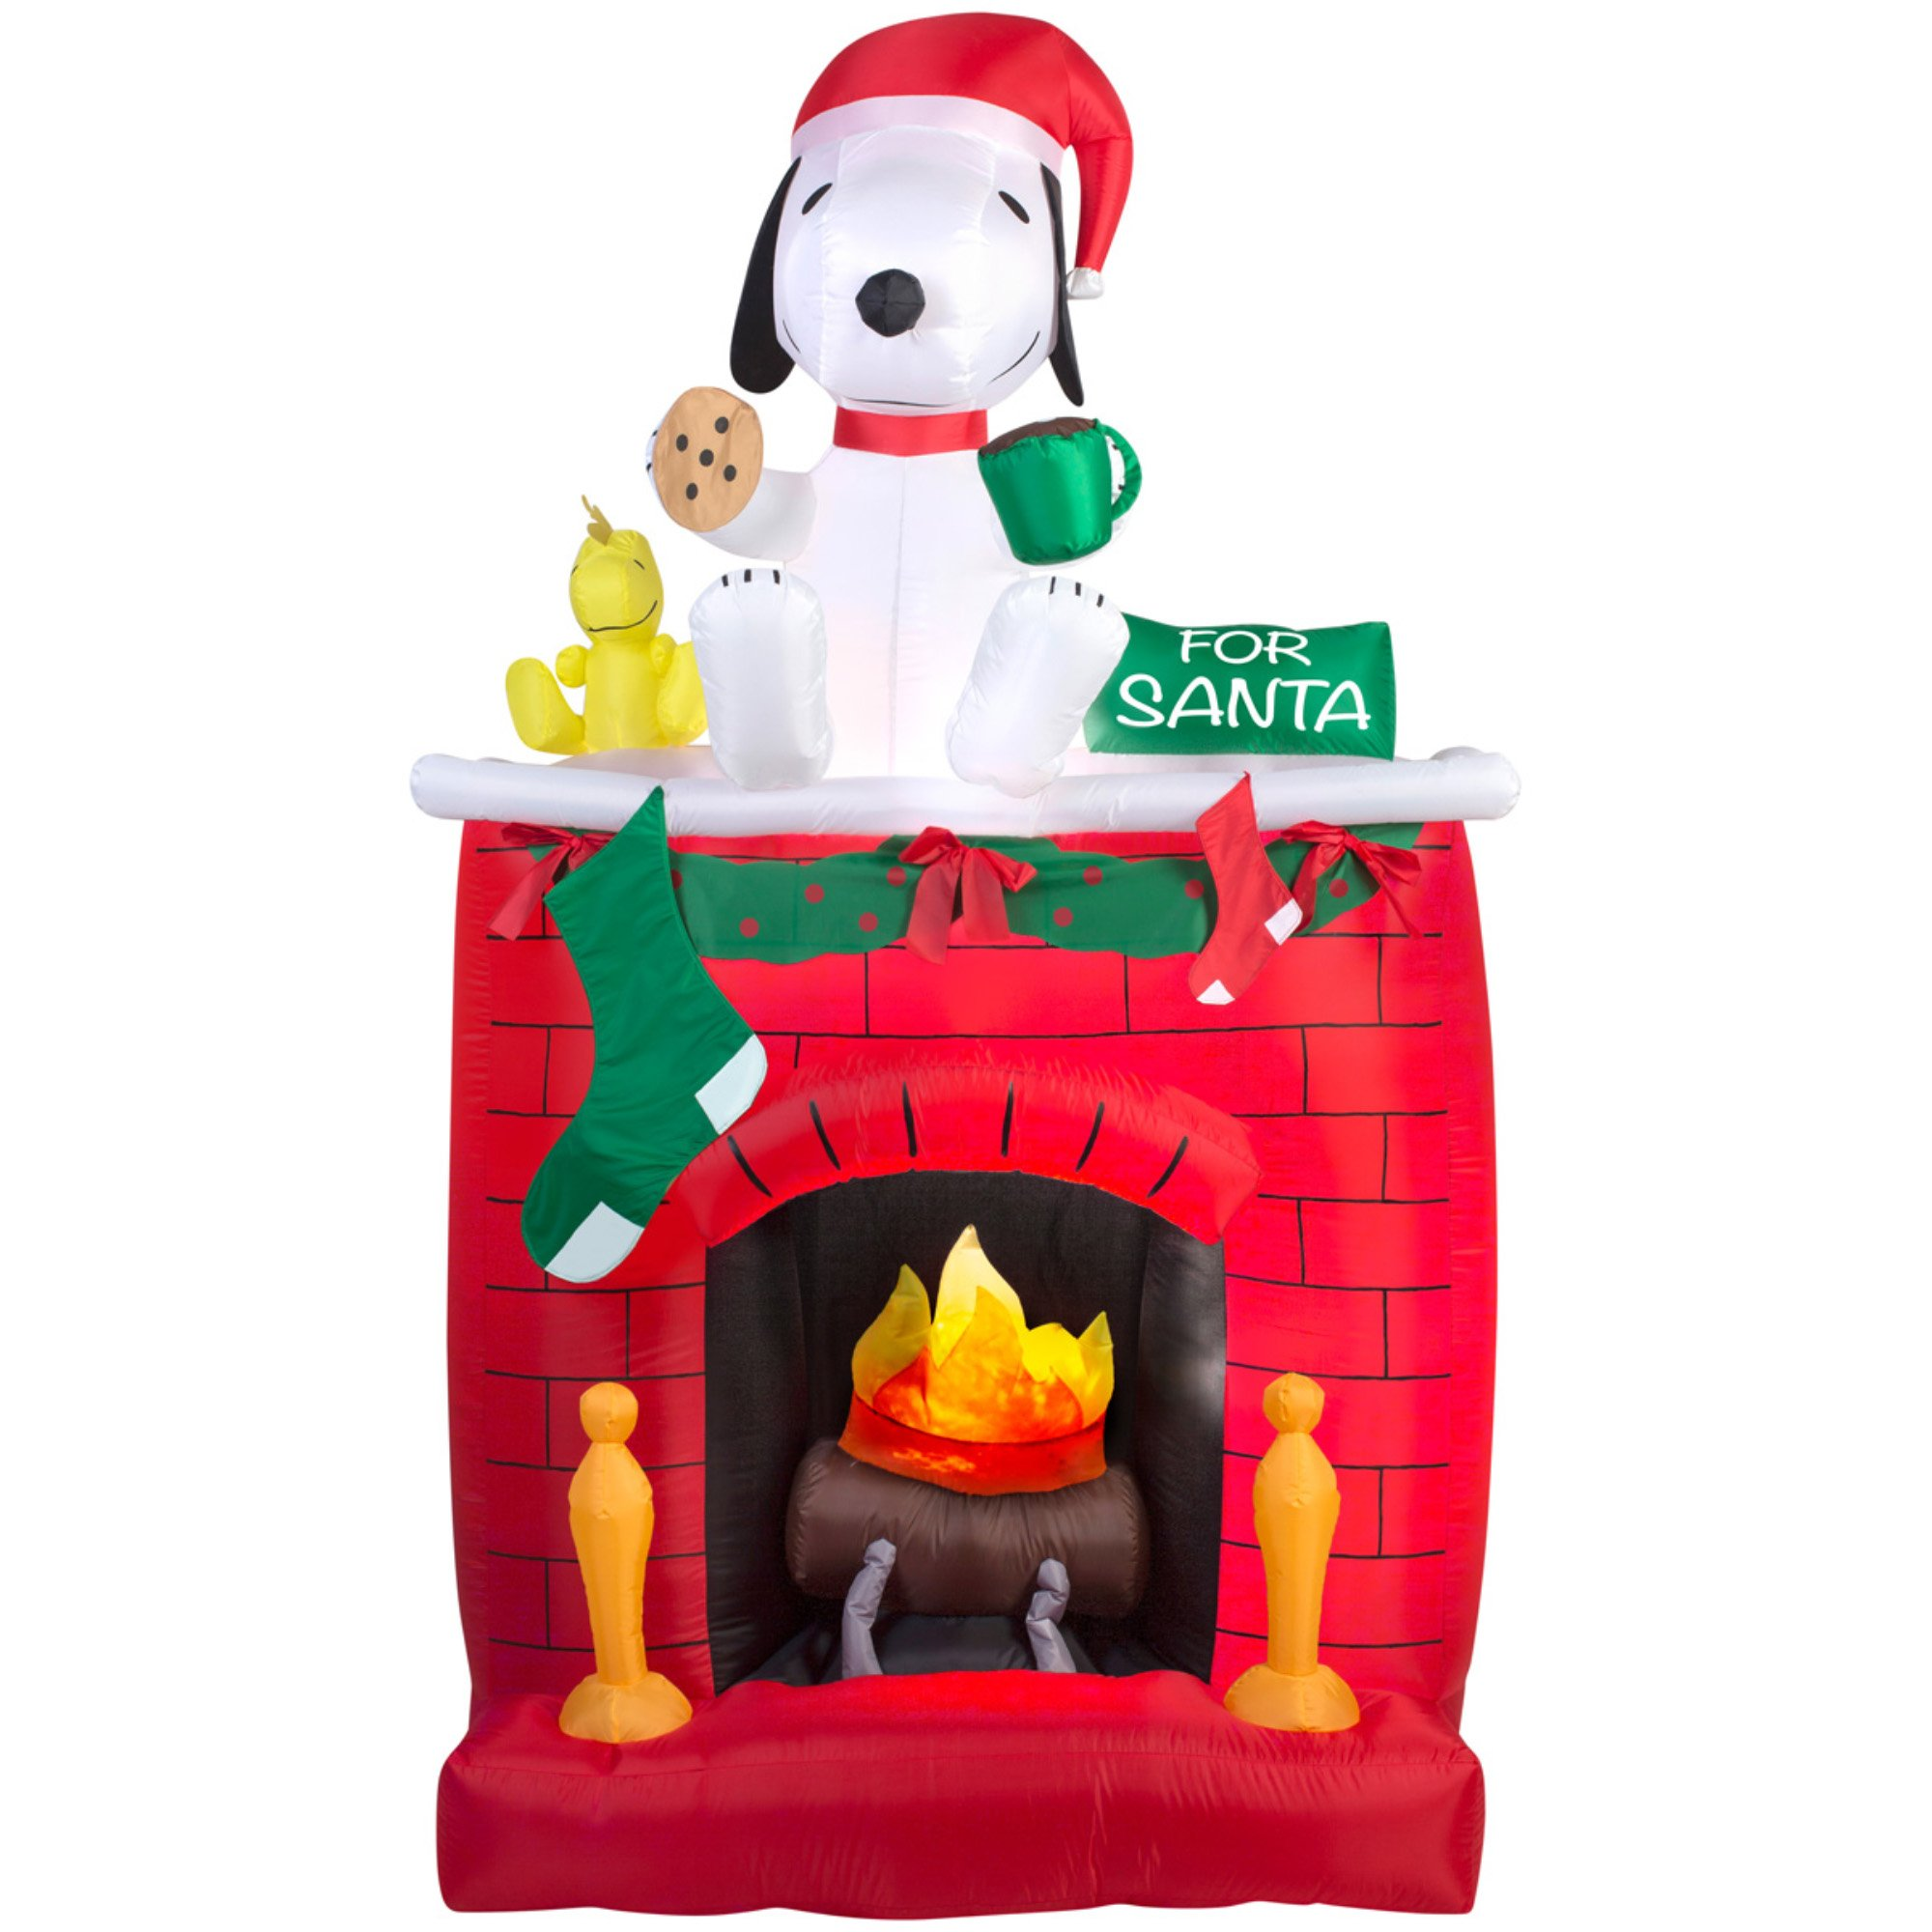 this super cute snoopy christmas yard decoration reveals a memorable holiday scene where snoopy and woodstock patiently await santas arrival